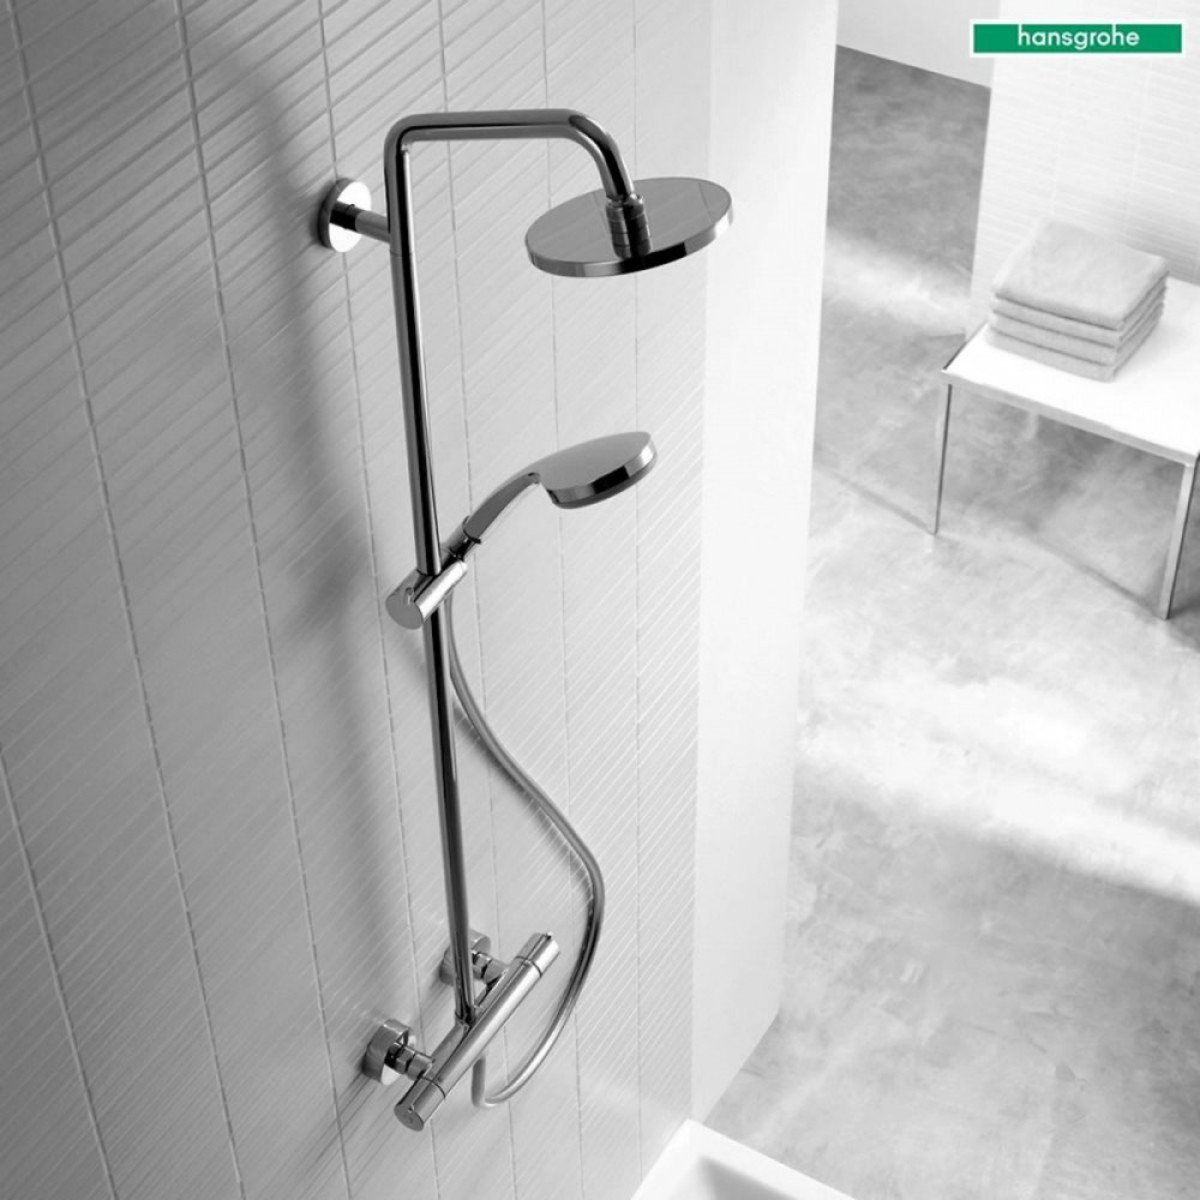 hansgrohe croma 160 showerpipe chroom 27135000. Black Bedroom Furniture Sets. Home Design Ideas